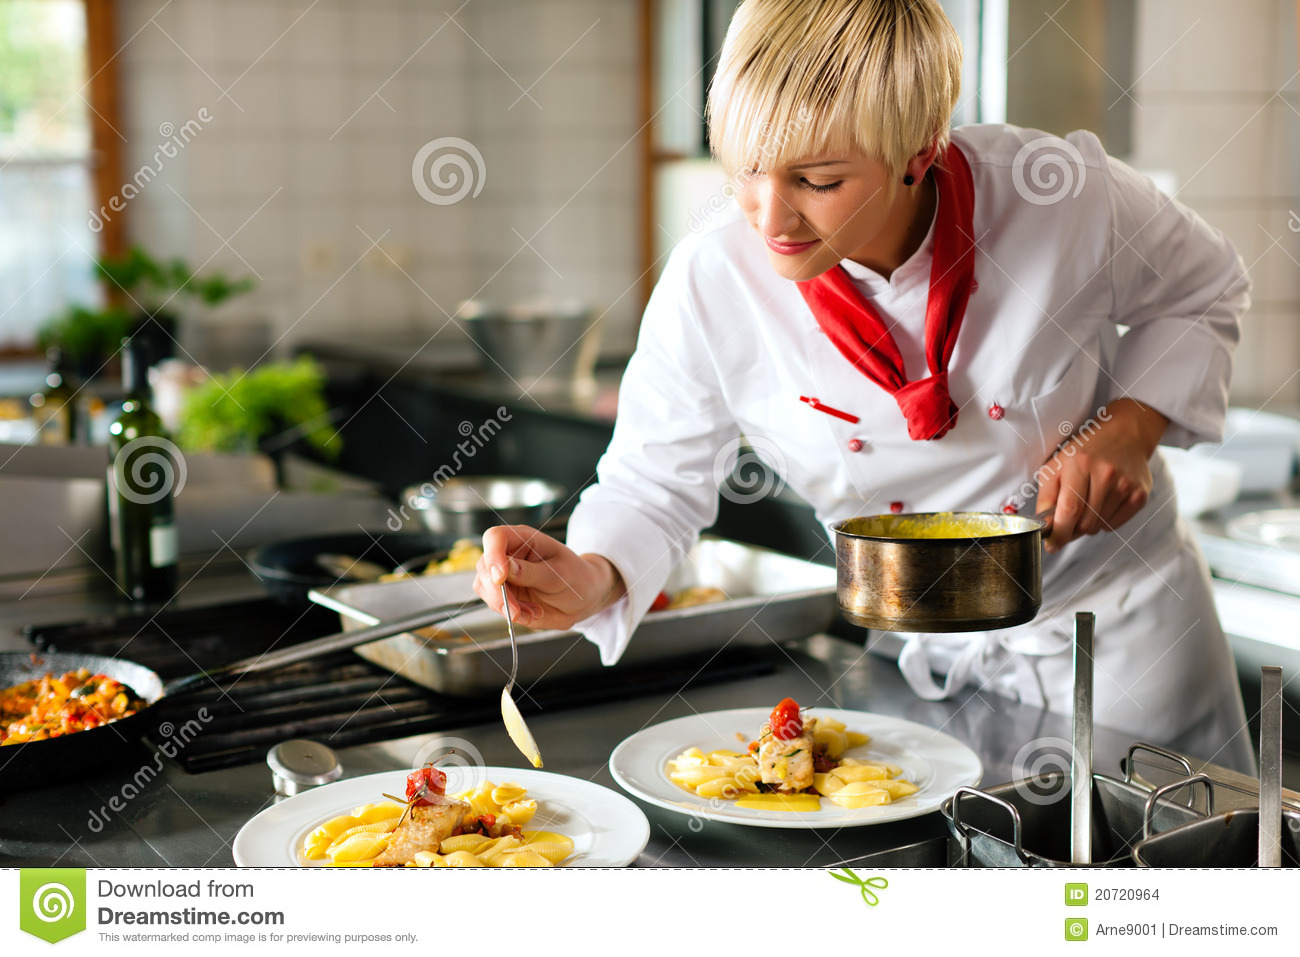 Restaurant Kitchen Chefs plain restaurant kitchen chefs r for inspiration